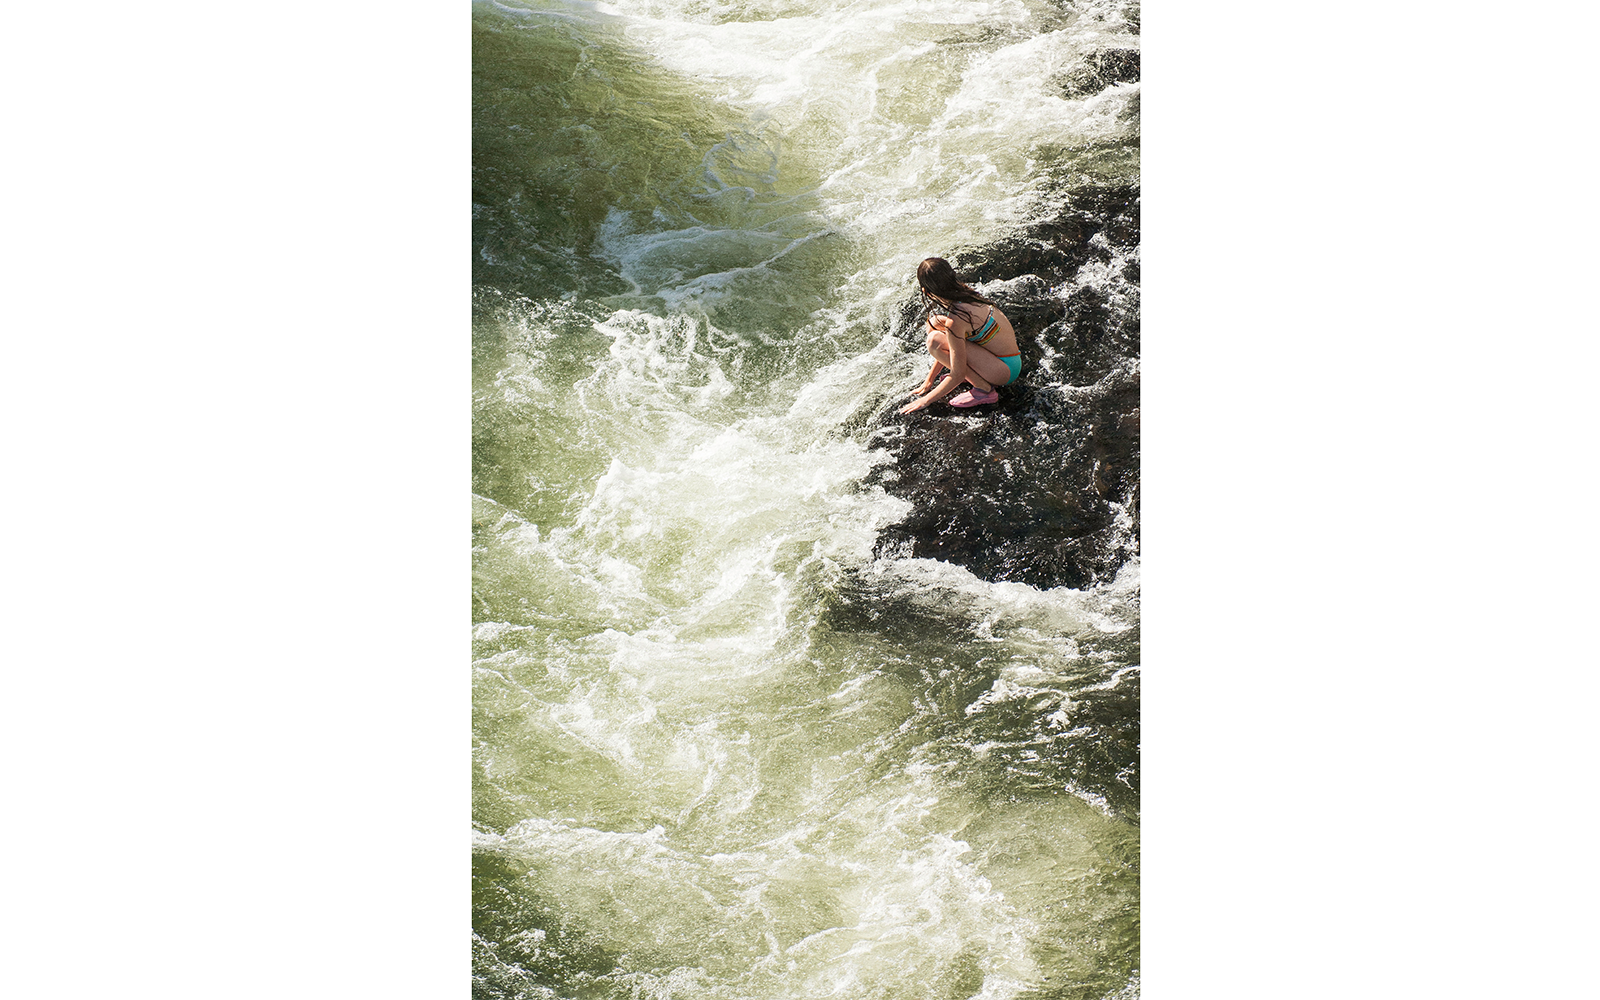 Firehole River Swimming Area in Yellowstone National Park, WY